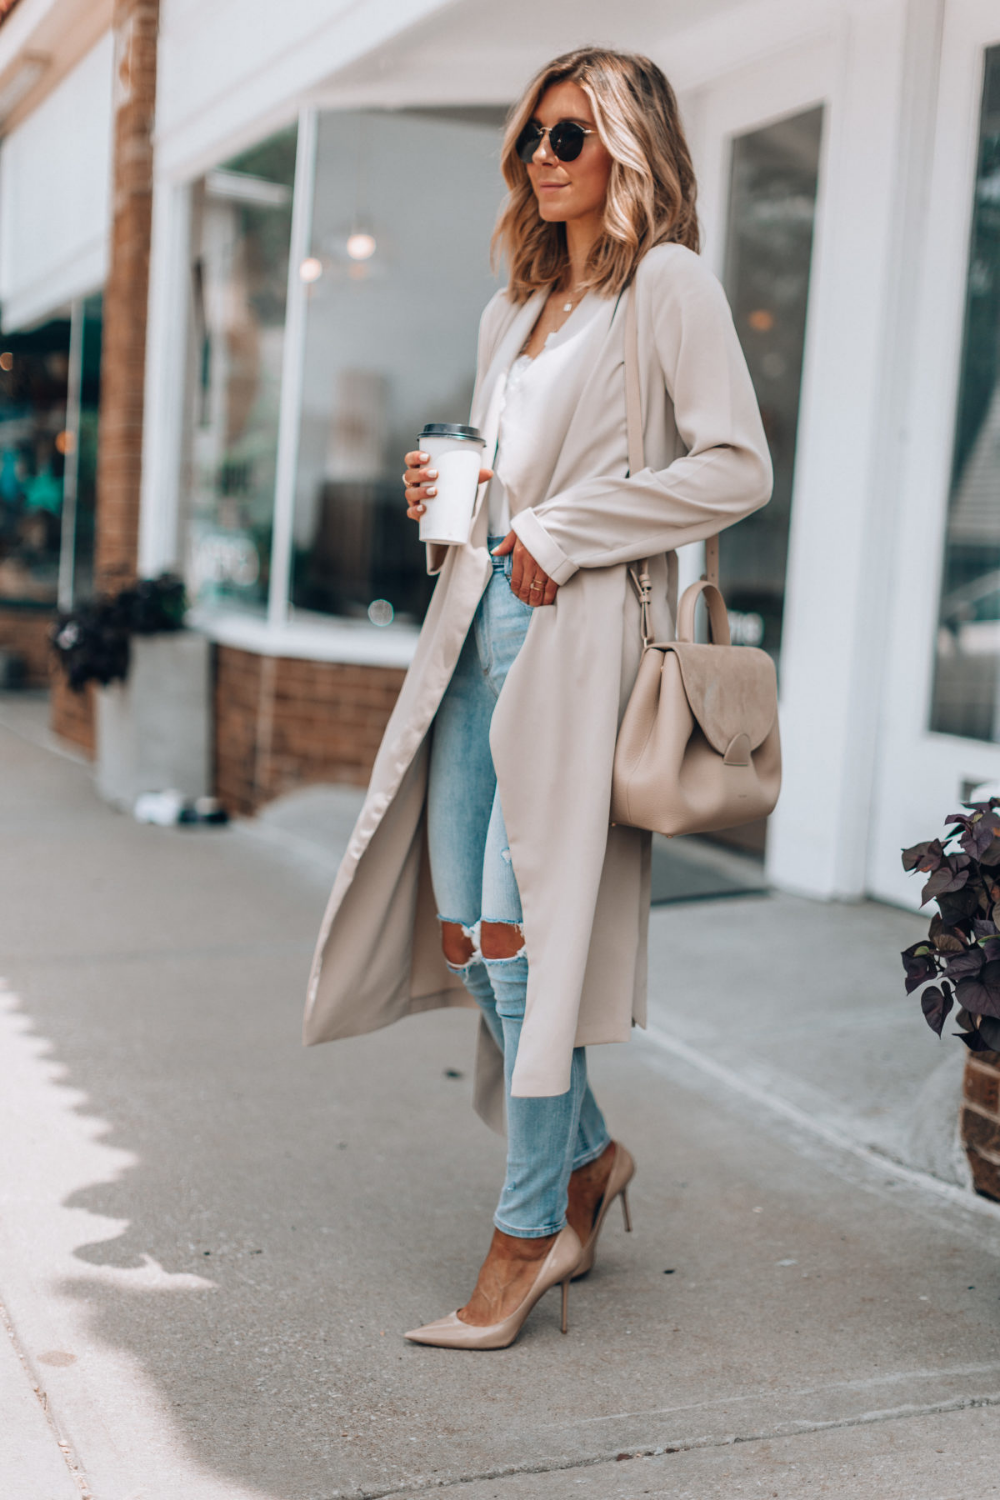 A Transitional Outfit For Summer To Fall Cella Jane Classy Outfits Transition Outfits Fashion